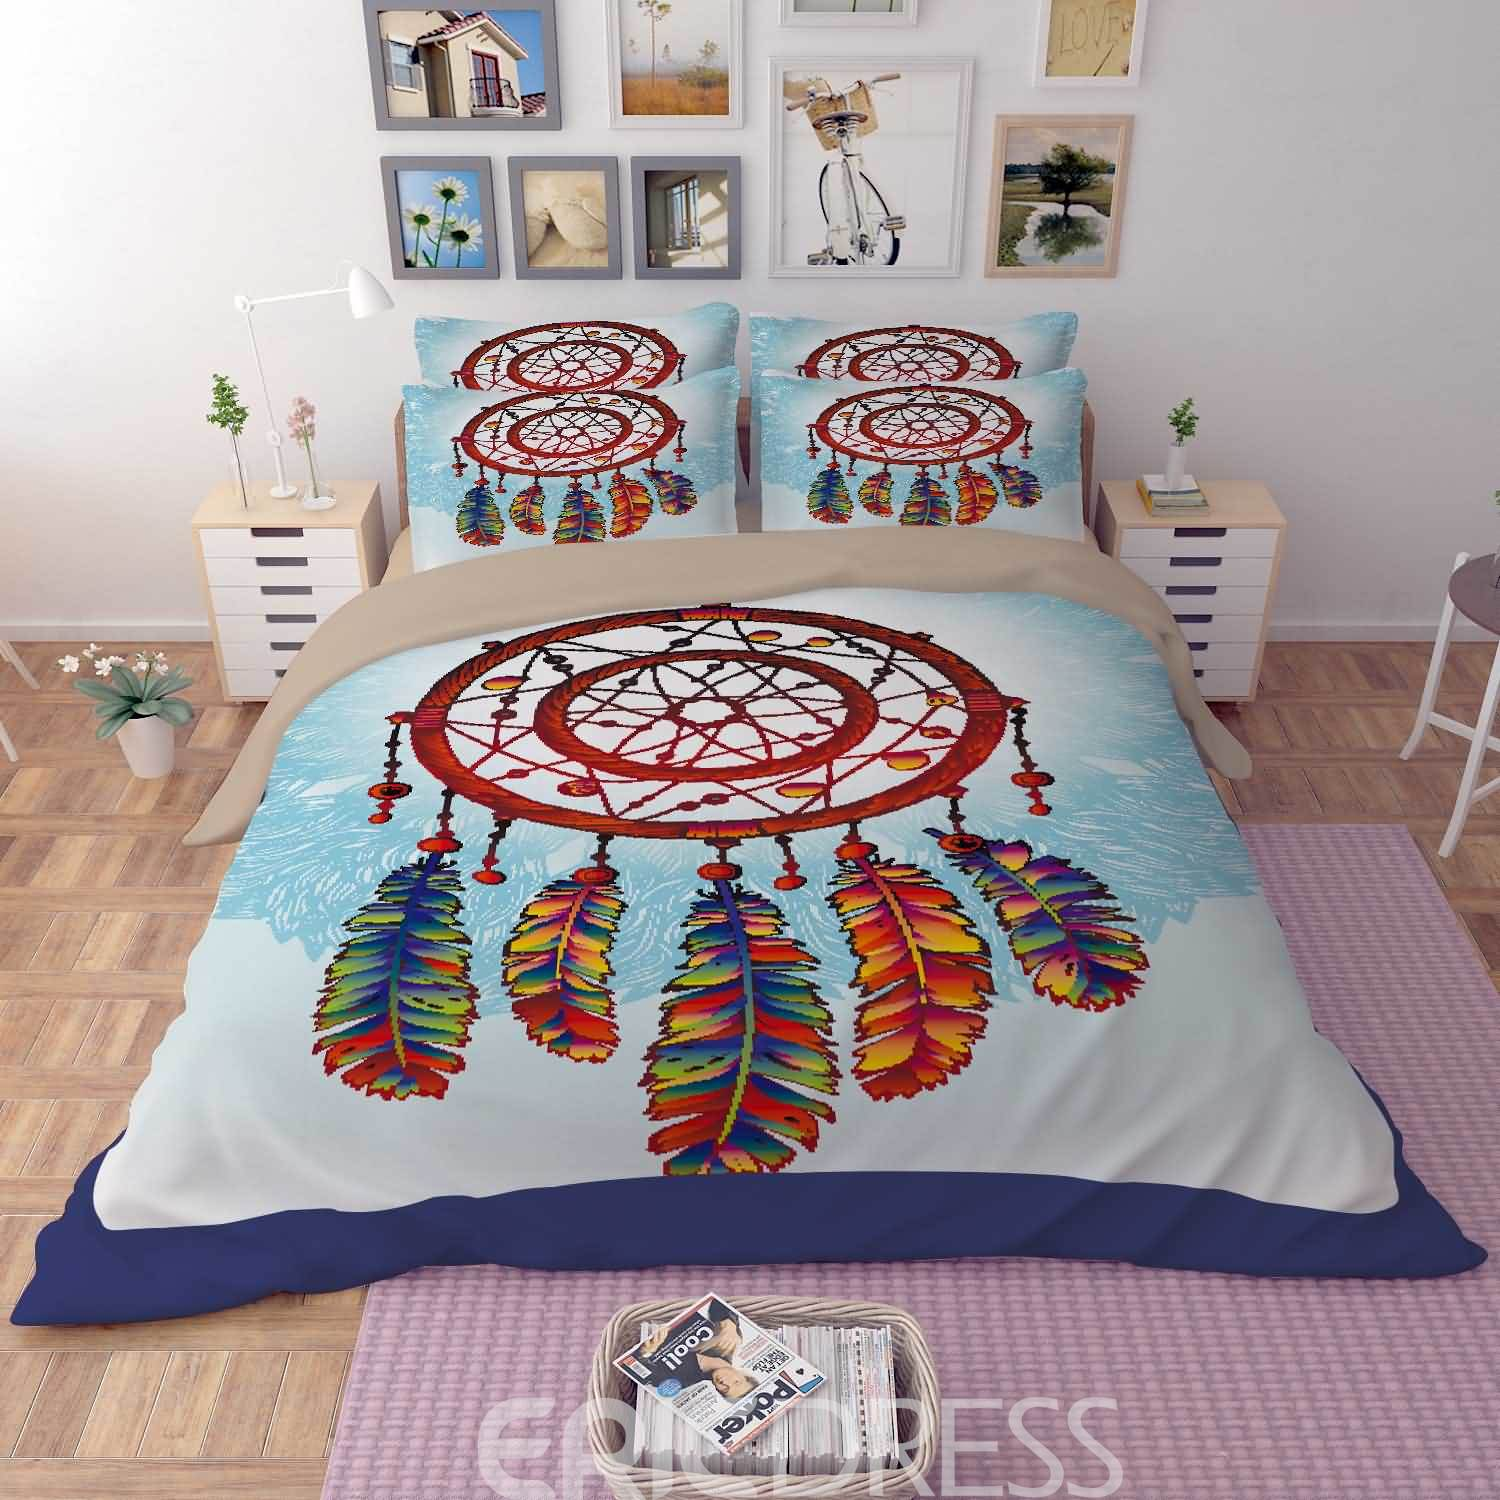 Vivilinen 3D Colorful Dream Catcher Printed Polyester 4-Piece Bedding Sets/Duvet Covers